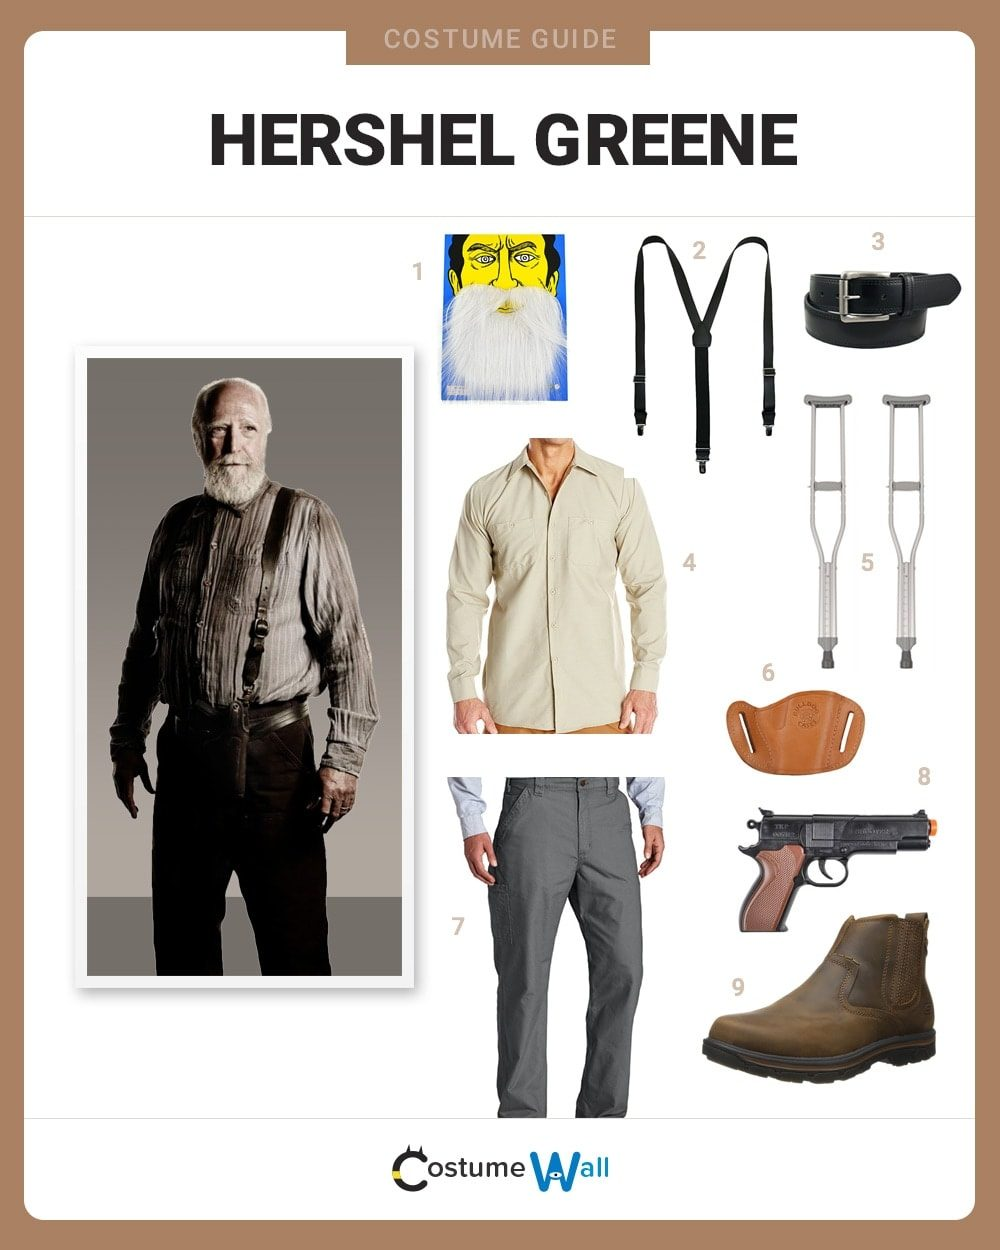 Hershel Greene Costume